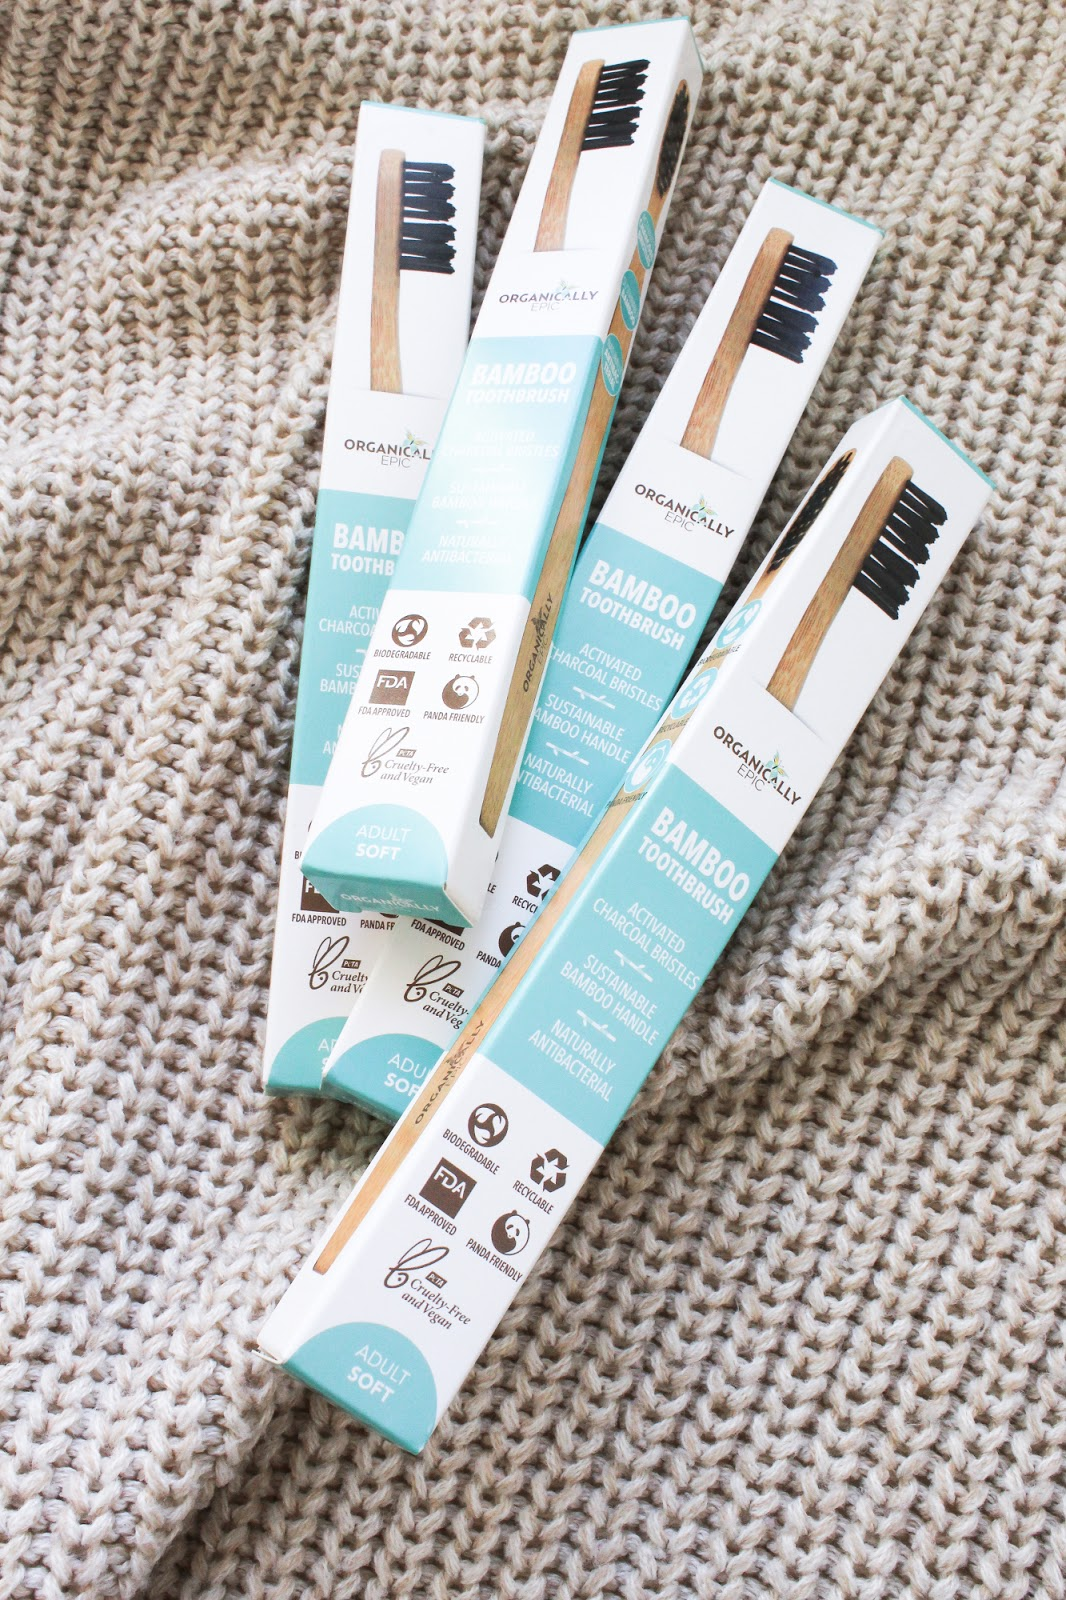 Organically Epic 4 Pack Toothbrushes Activated Charcoal Bristles, Panda Friendly, Biodegradable. Use less plastic. Love Lula